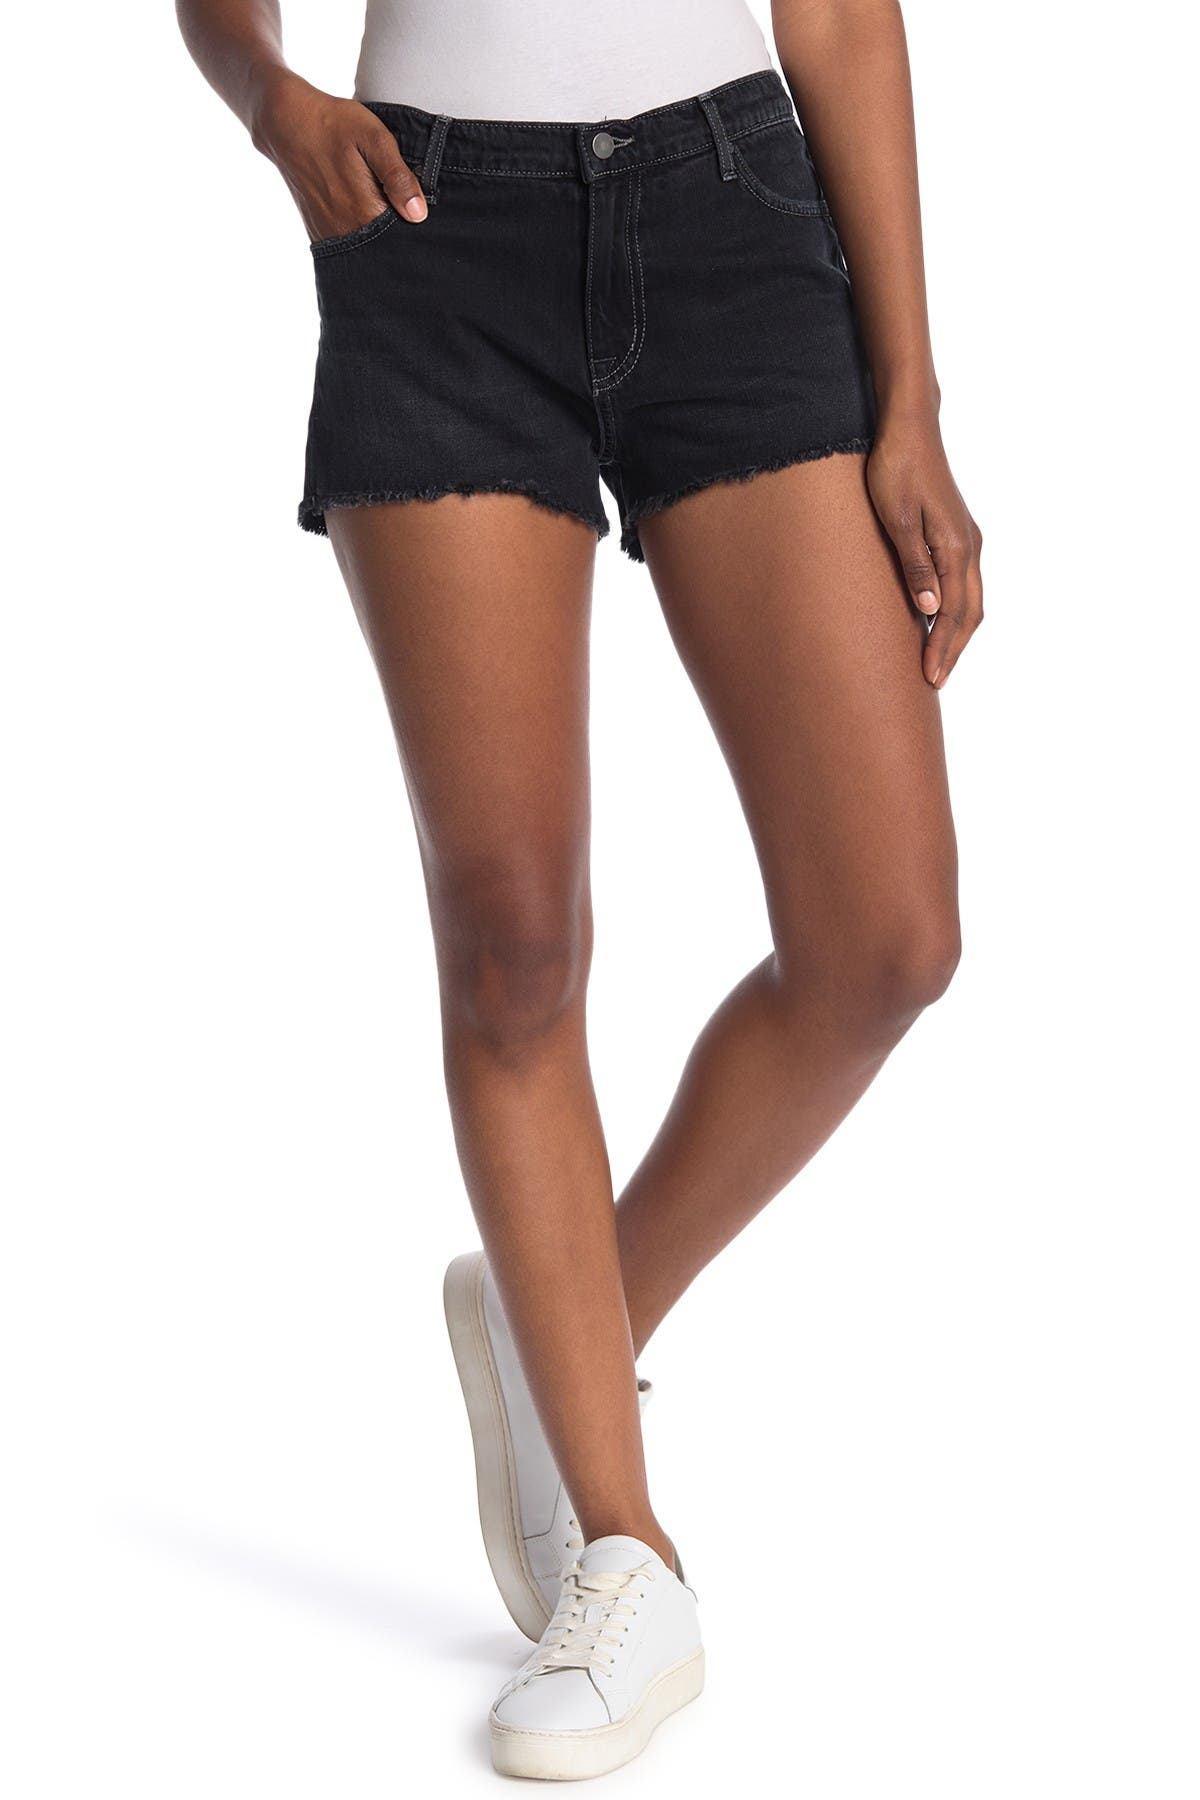 Image of FIDELITY DENIM Taylor Cutoff Frayed Shorts